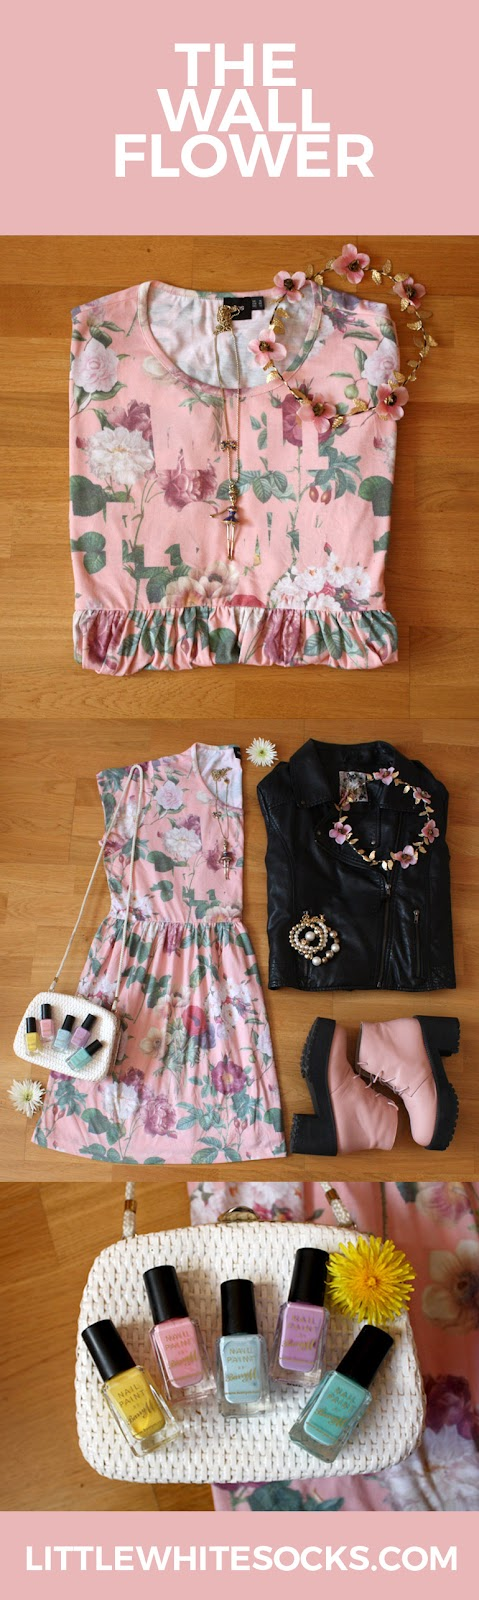 floral smock summer dress outfit